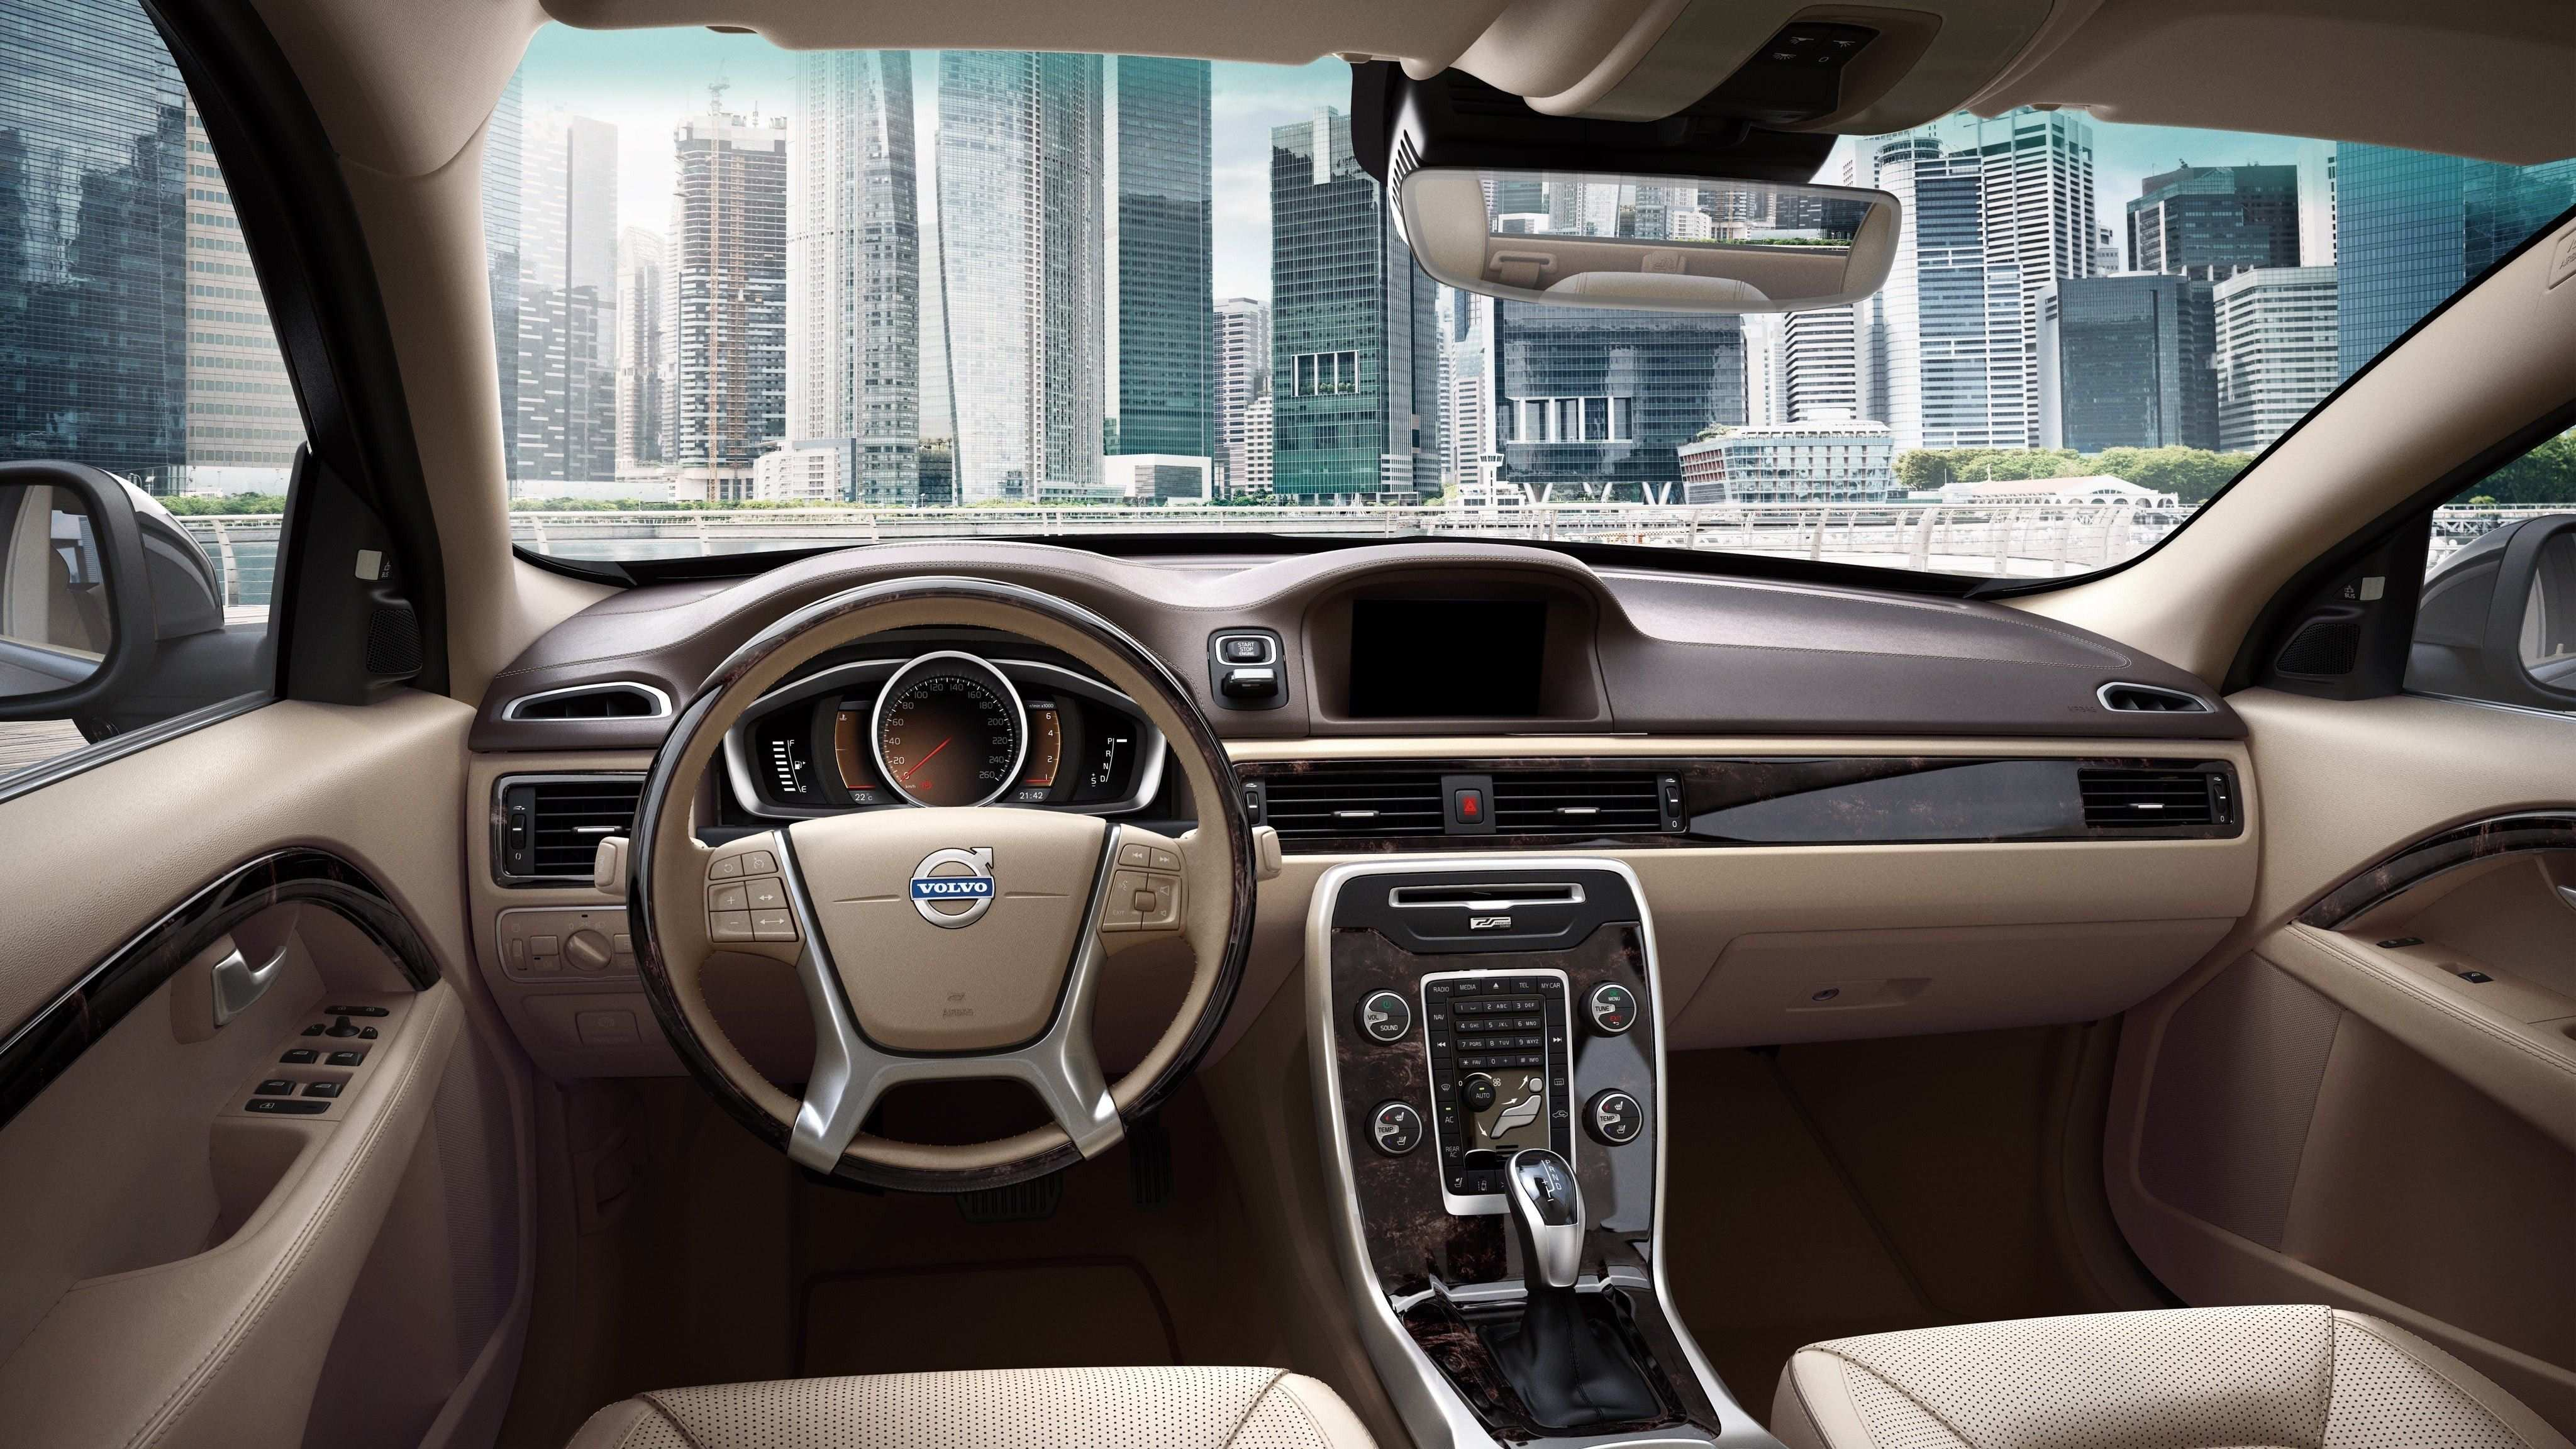 40 All New 2020 Volvo S80 Rumors with 2020 Volvo S80